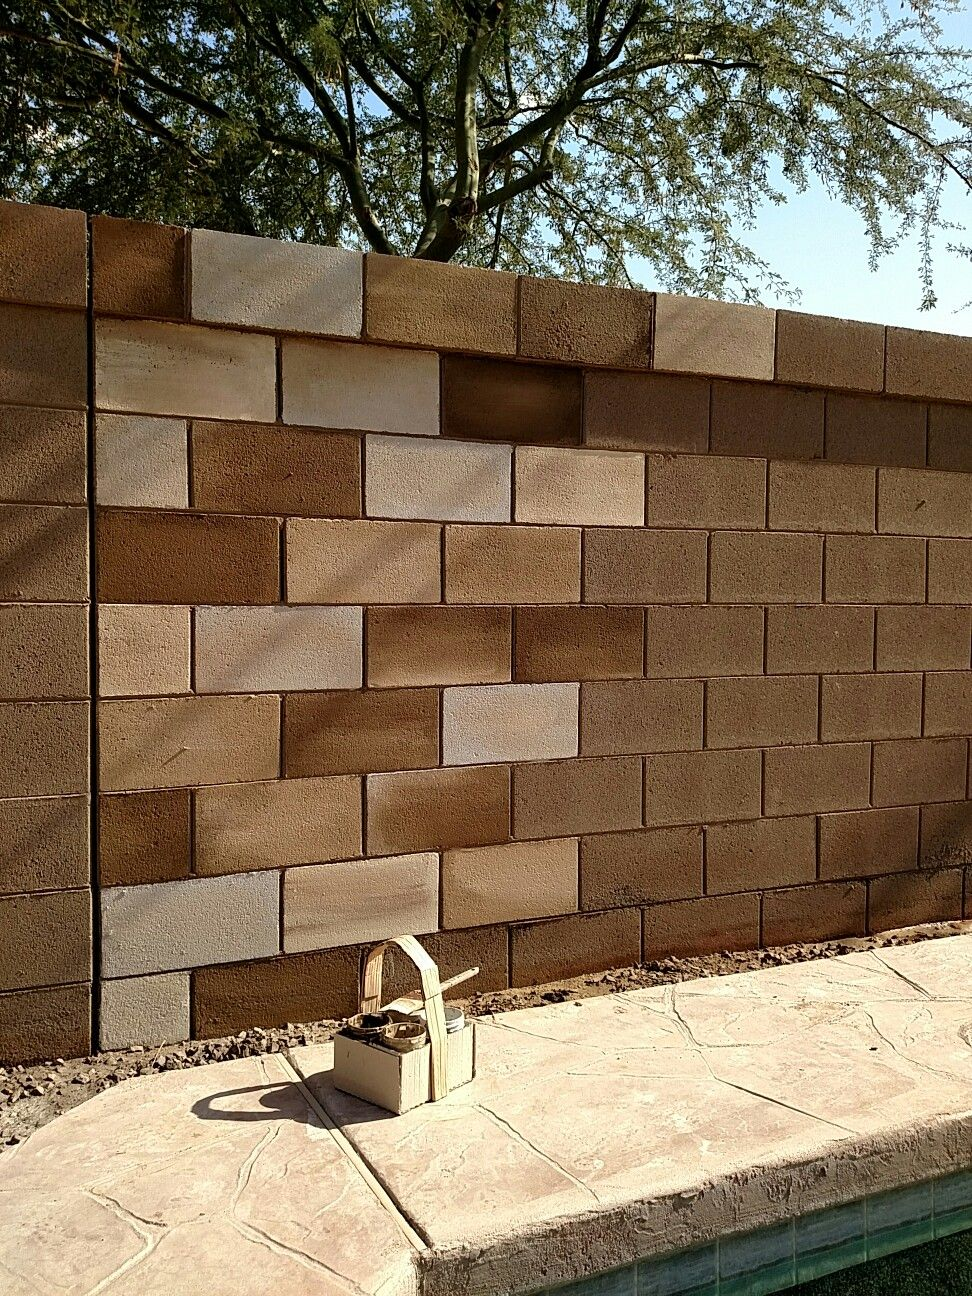 Cinder Hollow Block Wall Backyard Living Pinterest Block Wall Cinder And Walls